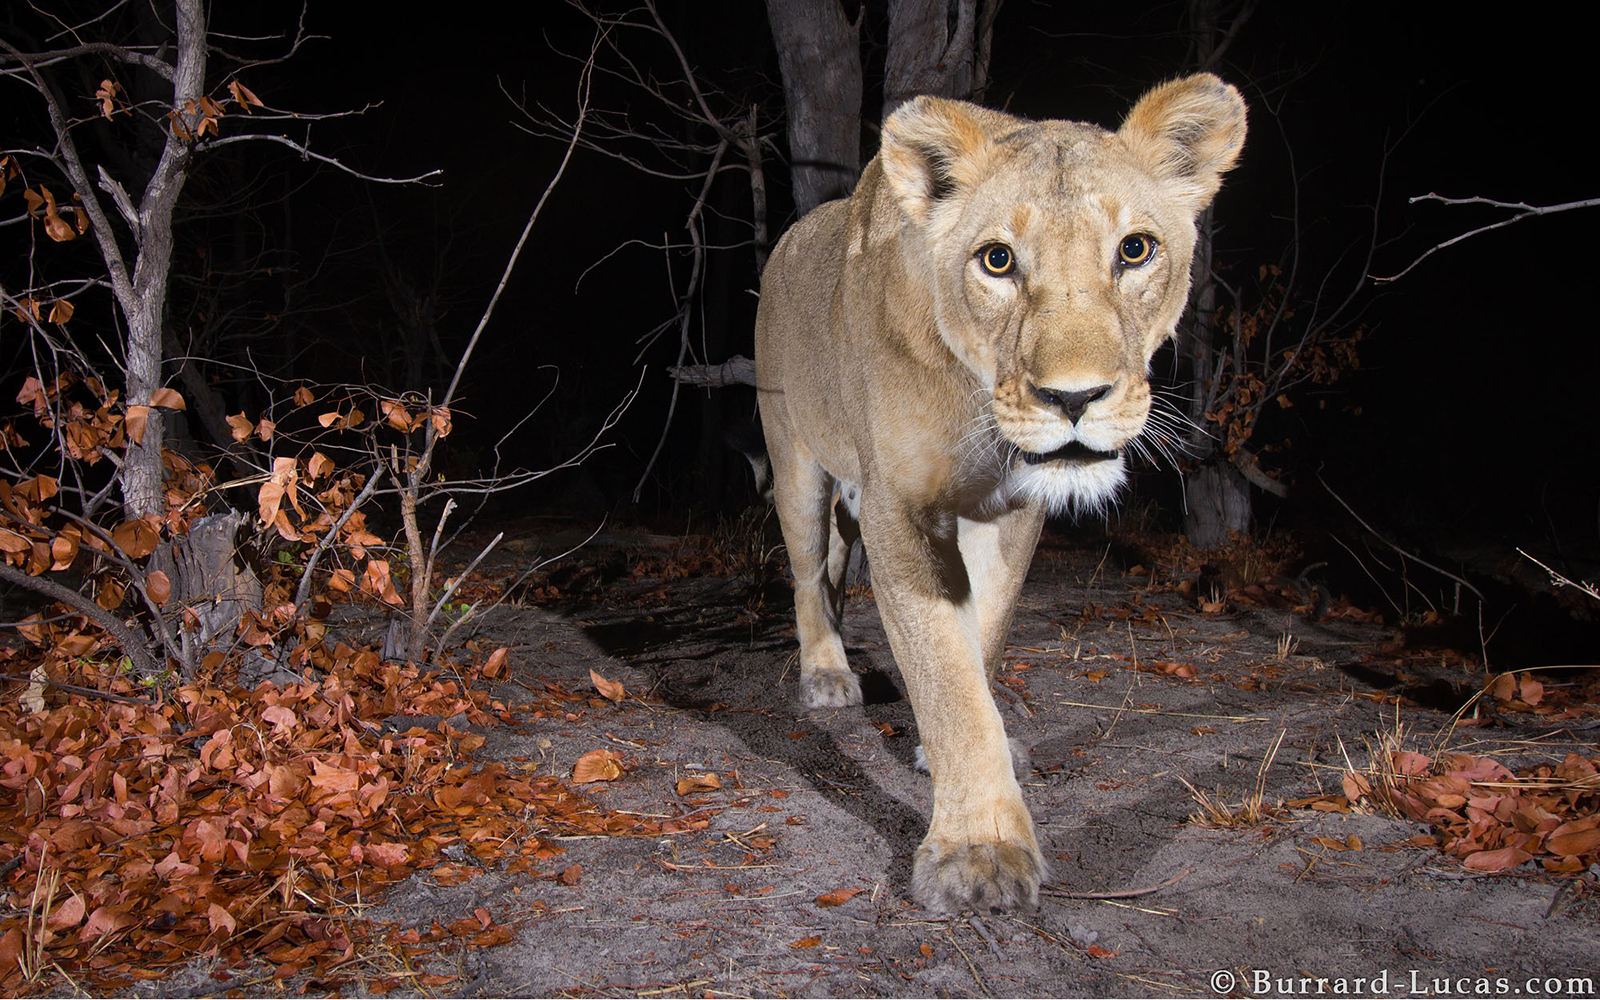 Camera trap image taken in the Zambezi Region of Namibia for WWF using a Camtraptions PIR motion sensor.